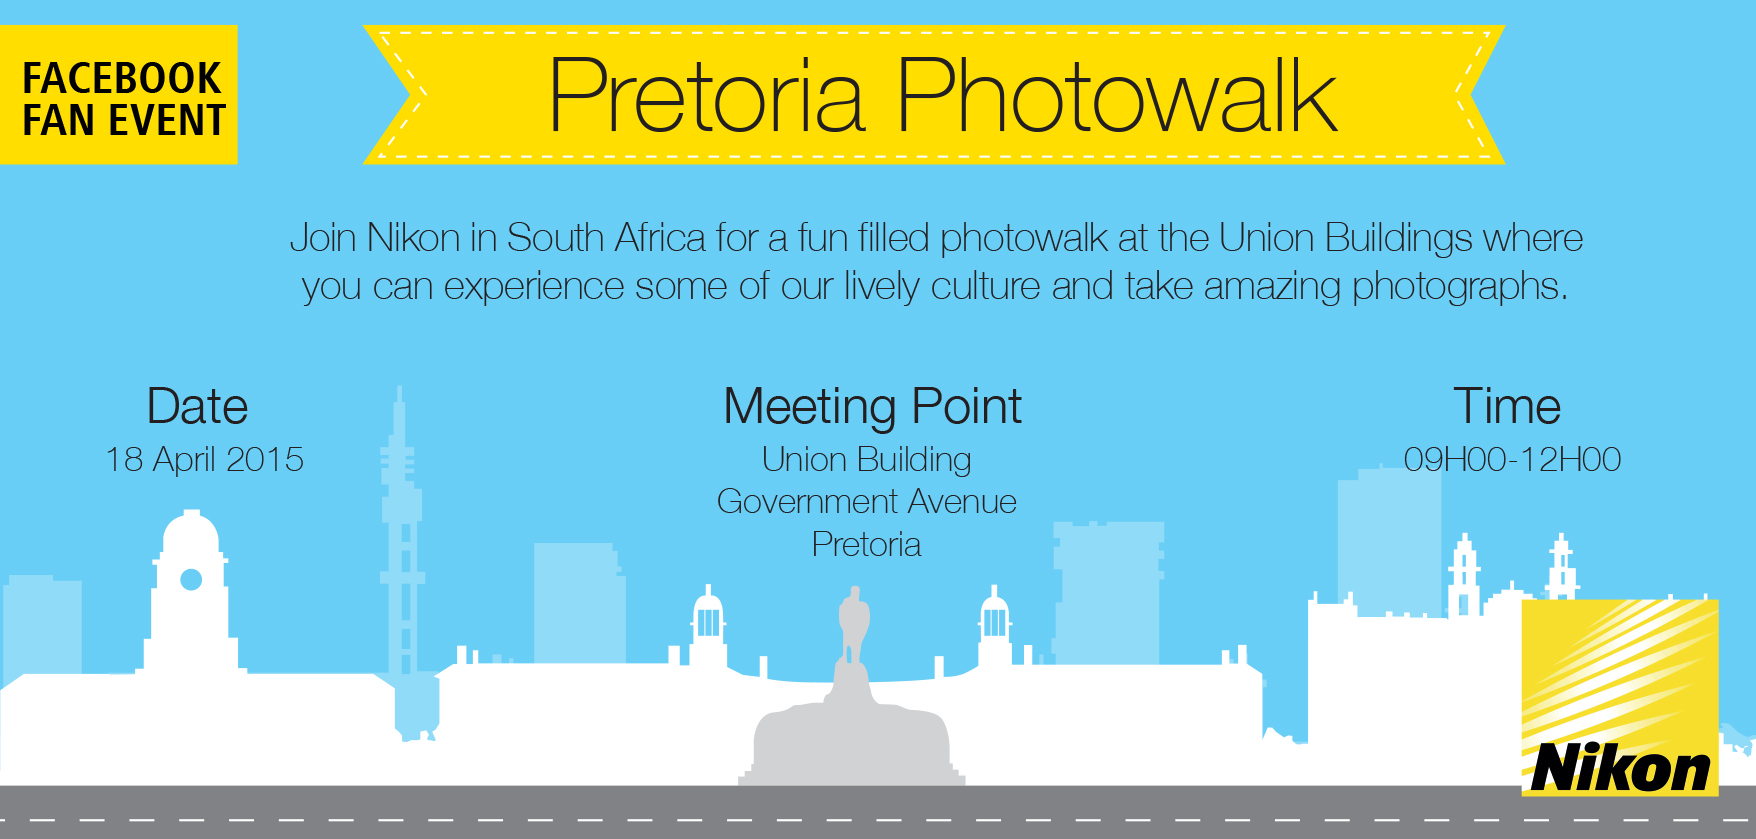 Pretoria Photowalk_Facebook highlight